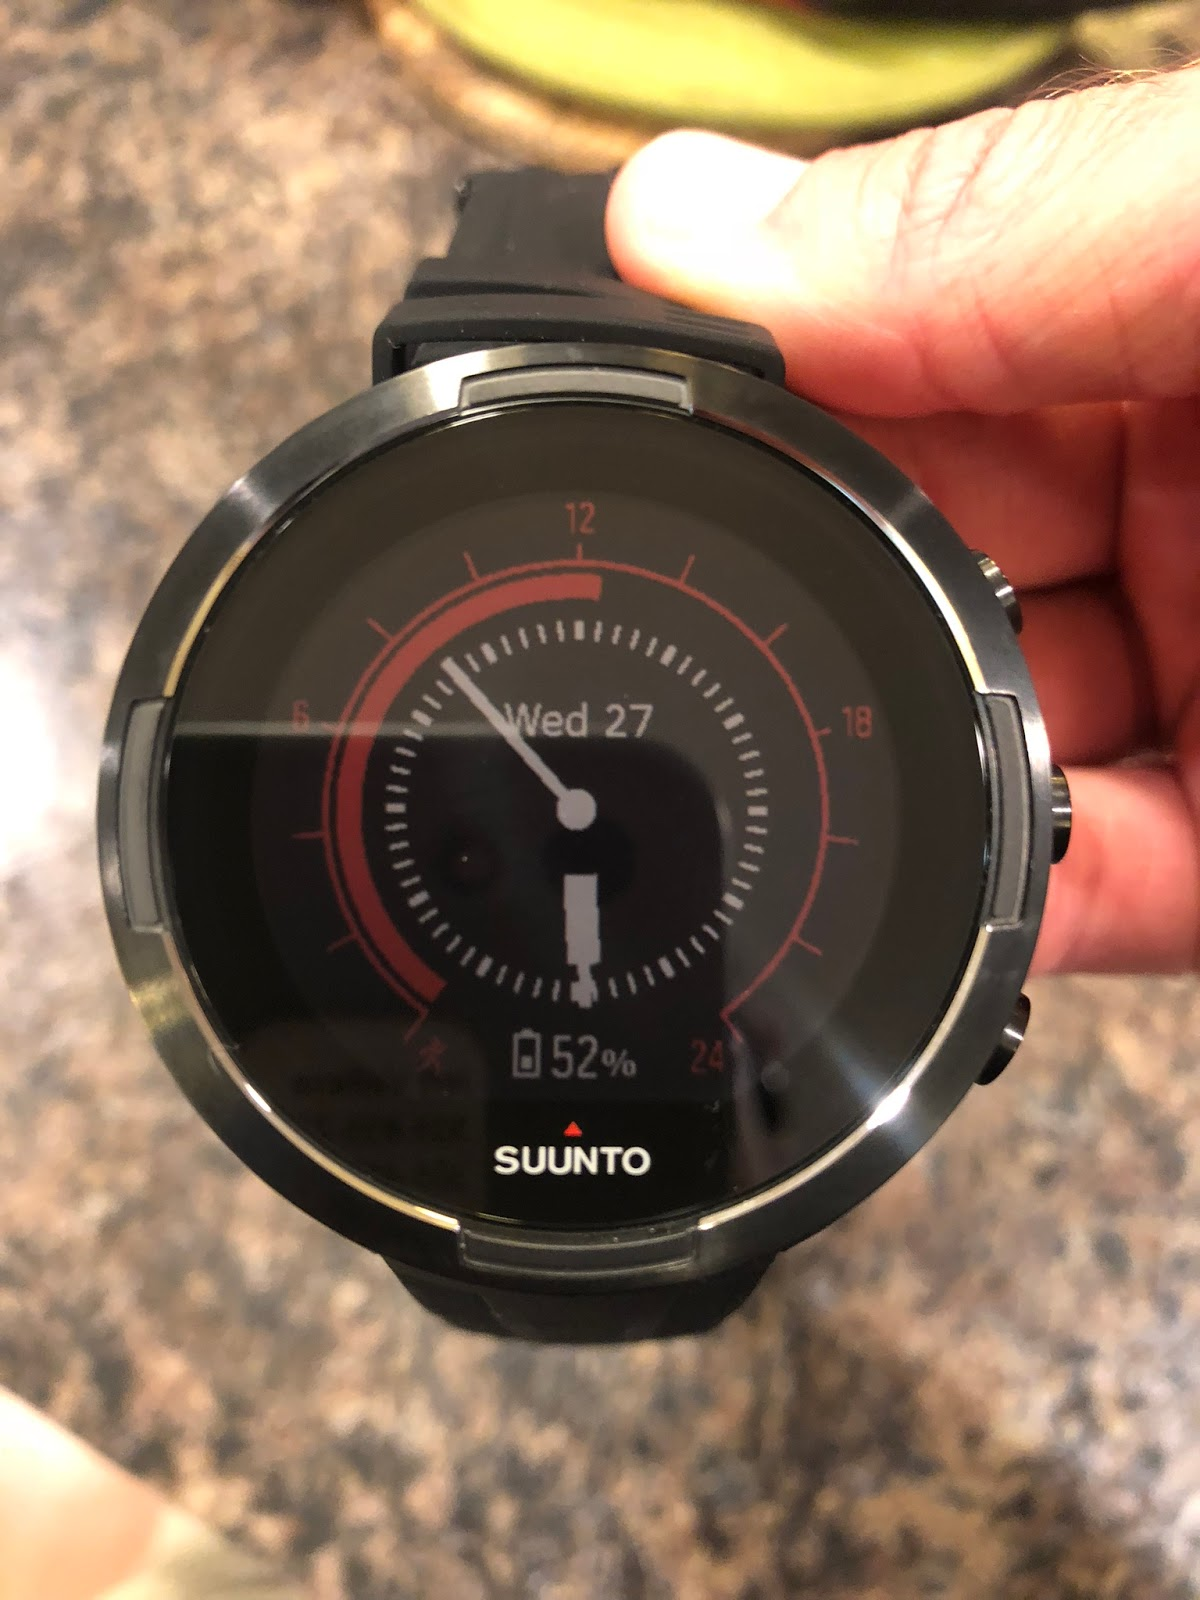 Road Trail Run Suunto 9 Baro Initial Impressions Review Ambit3 Sport Black Hr Gps Watch For Outdoor Sports Fusedtrack Extended Intelligent Long Life Battery Settings And Improved Wrist